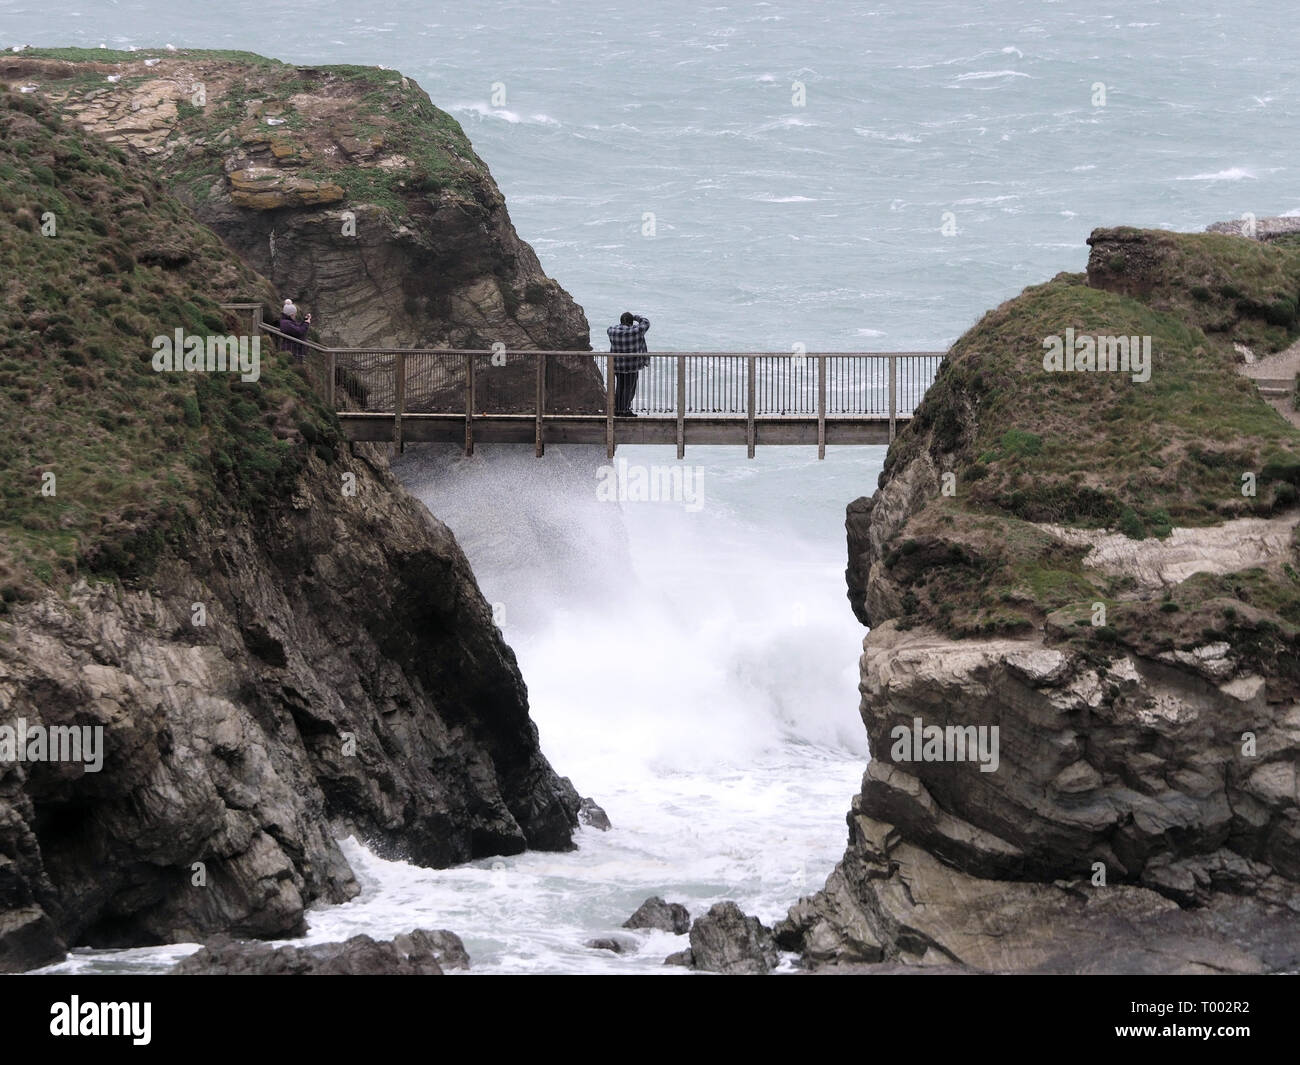 Newquay,Cornwall, UK, 16th March 2019.UK weather: Gales lash Fistral Bay and the Bridge to Porth Island in Newquay.. Credit: Robert Taylor/Alamy Live News - Stock Image